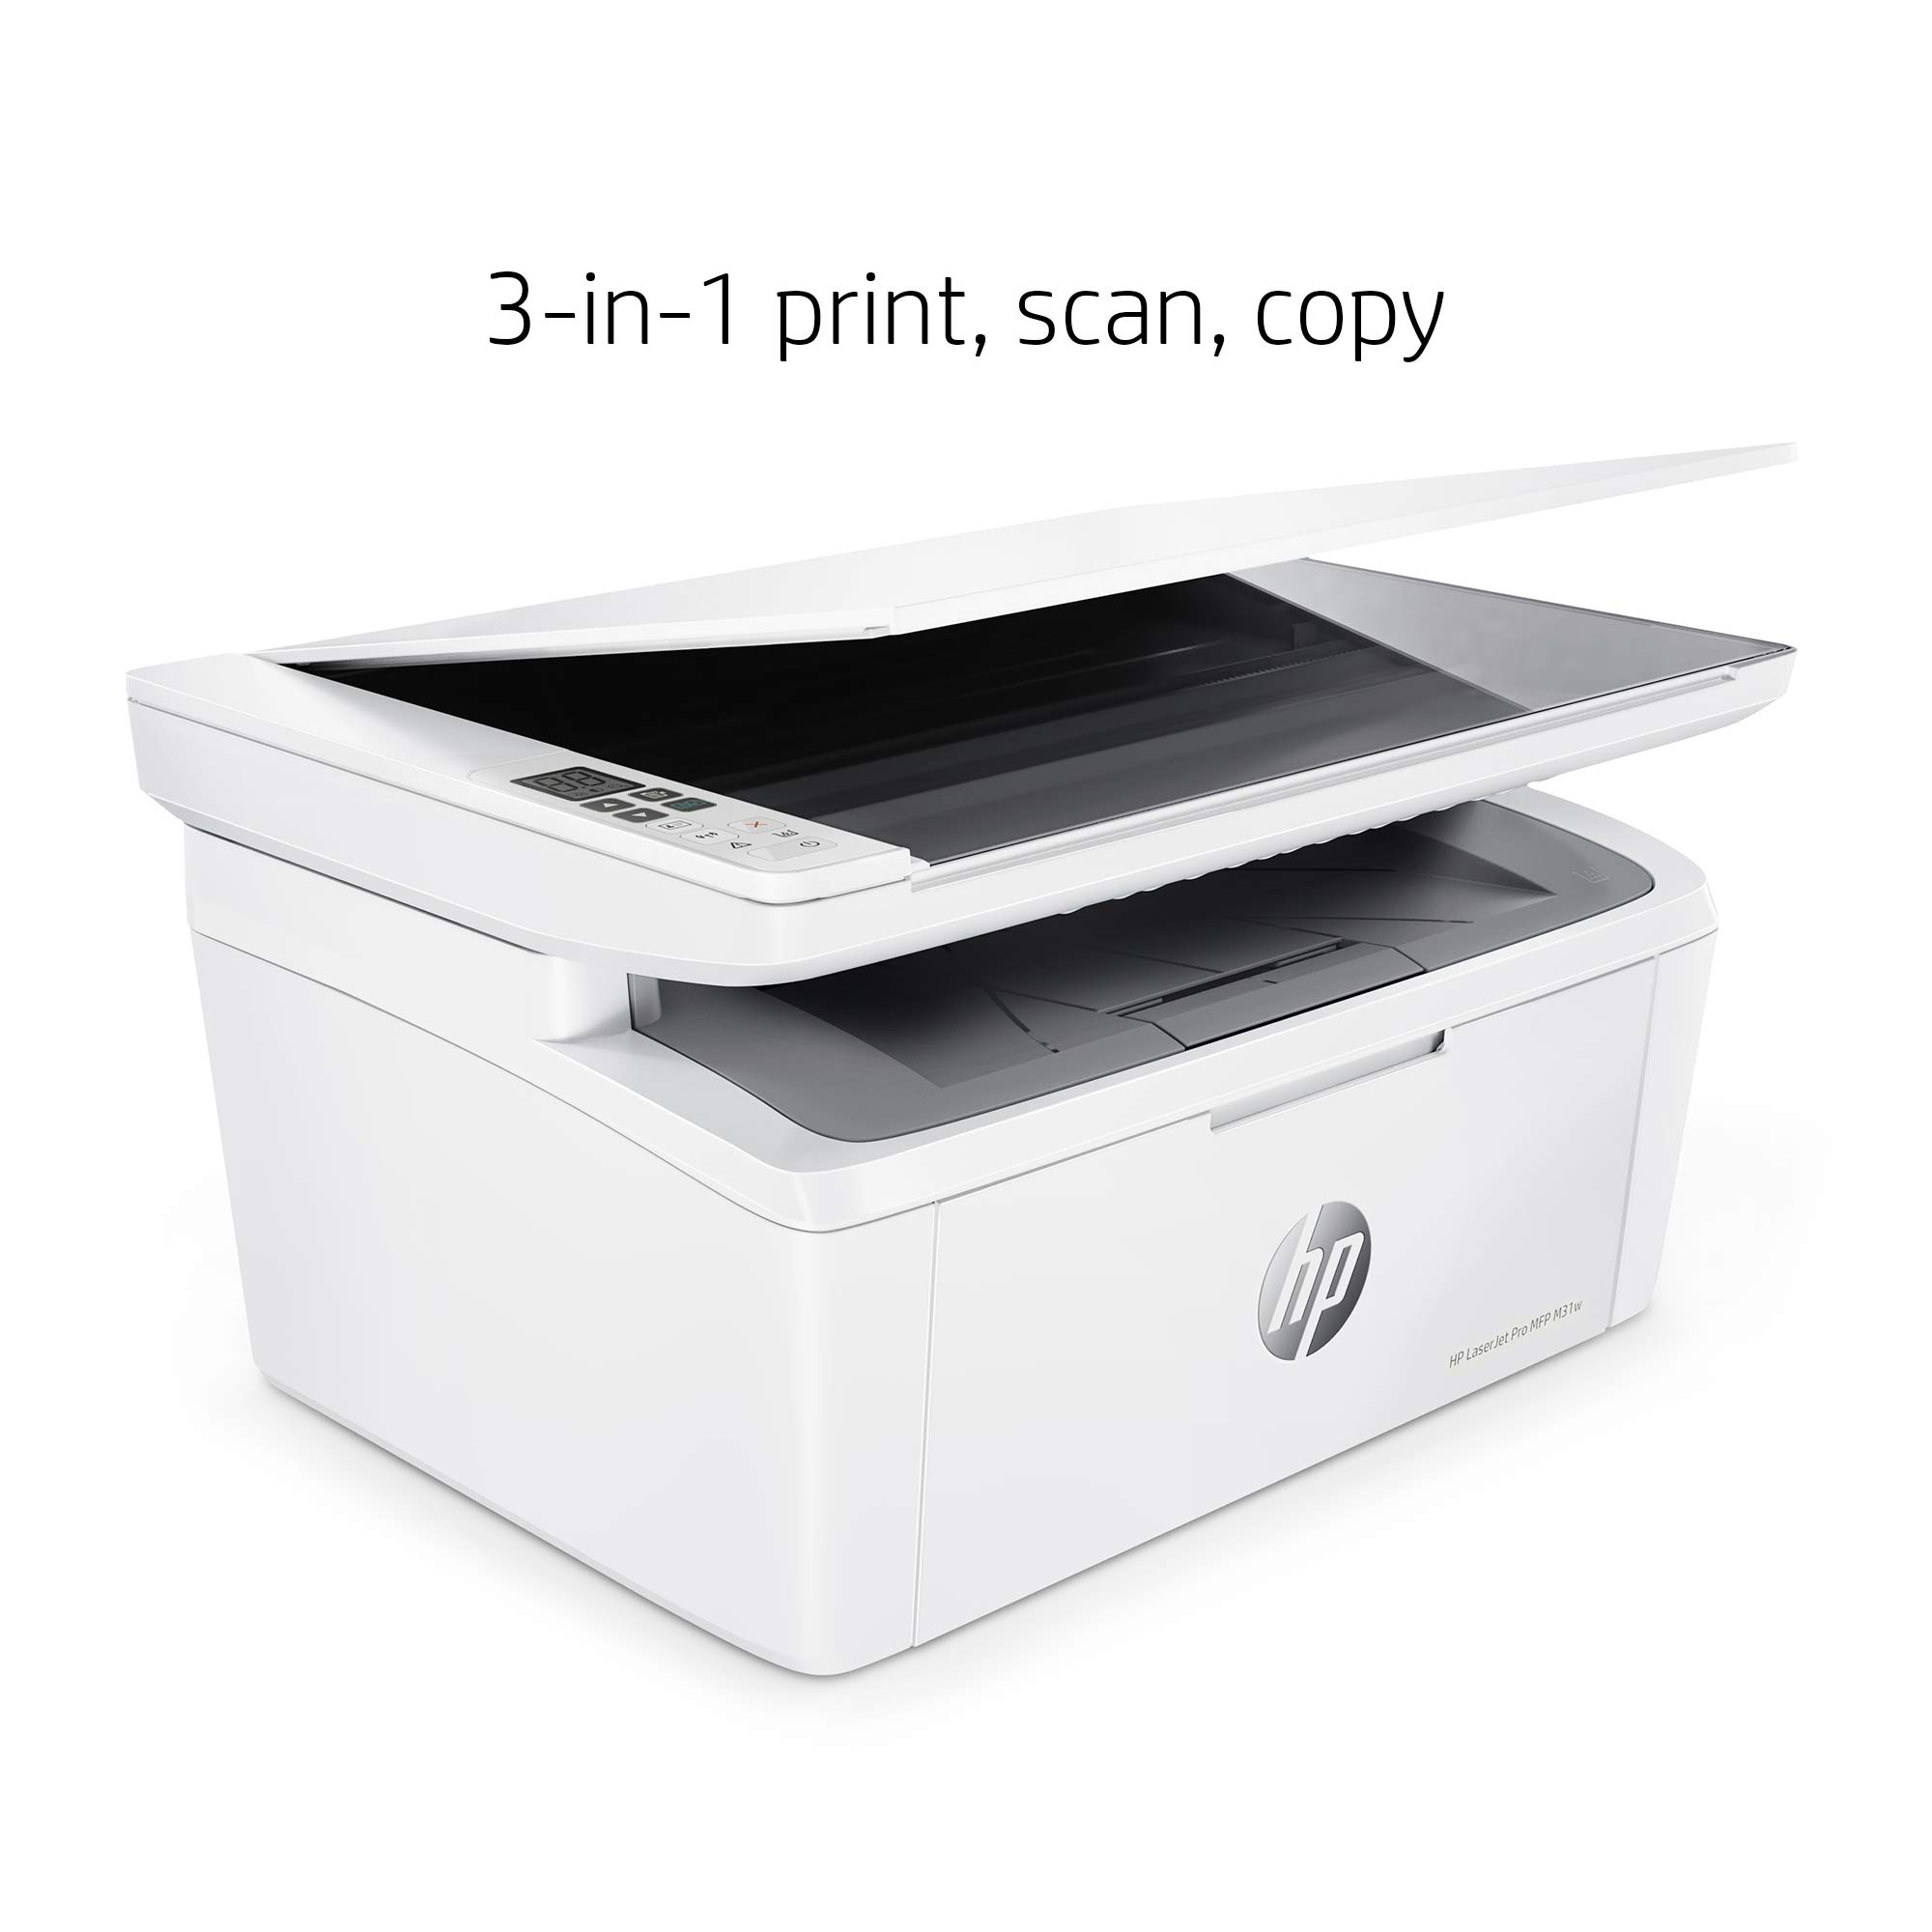 HP Laserjet Pro M31w All-in-One Wireless Monochrome Laser Printer with Mobile Printing (Y5S55A) by HP (Image #8)